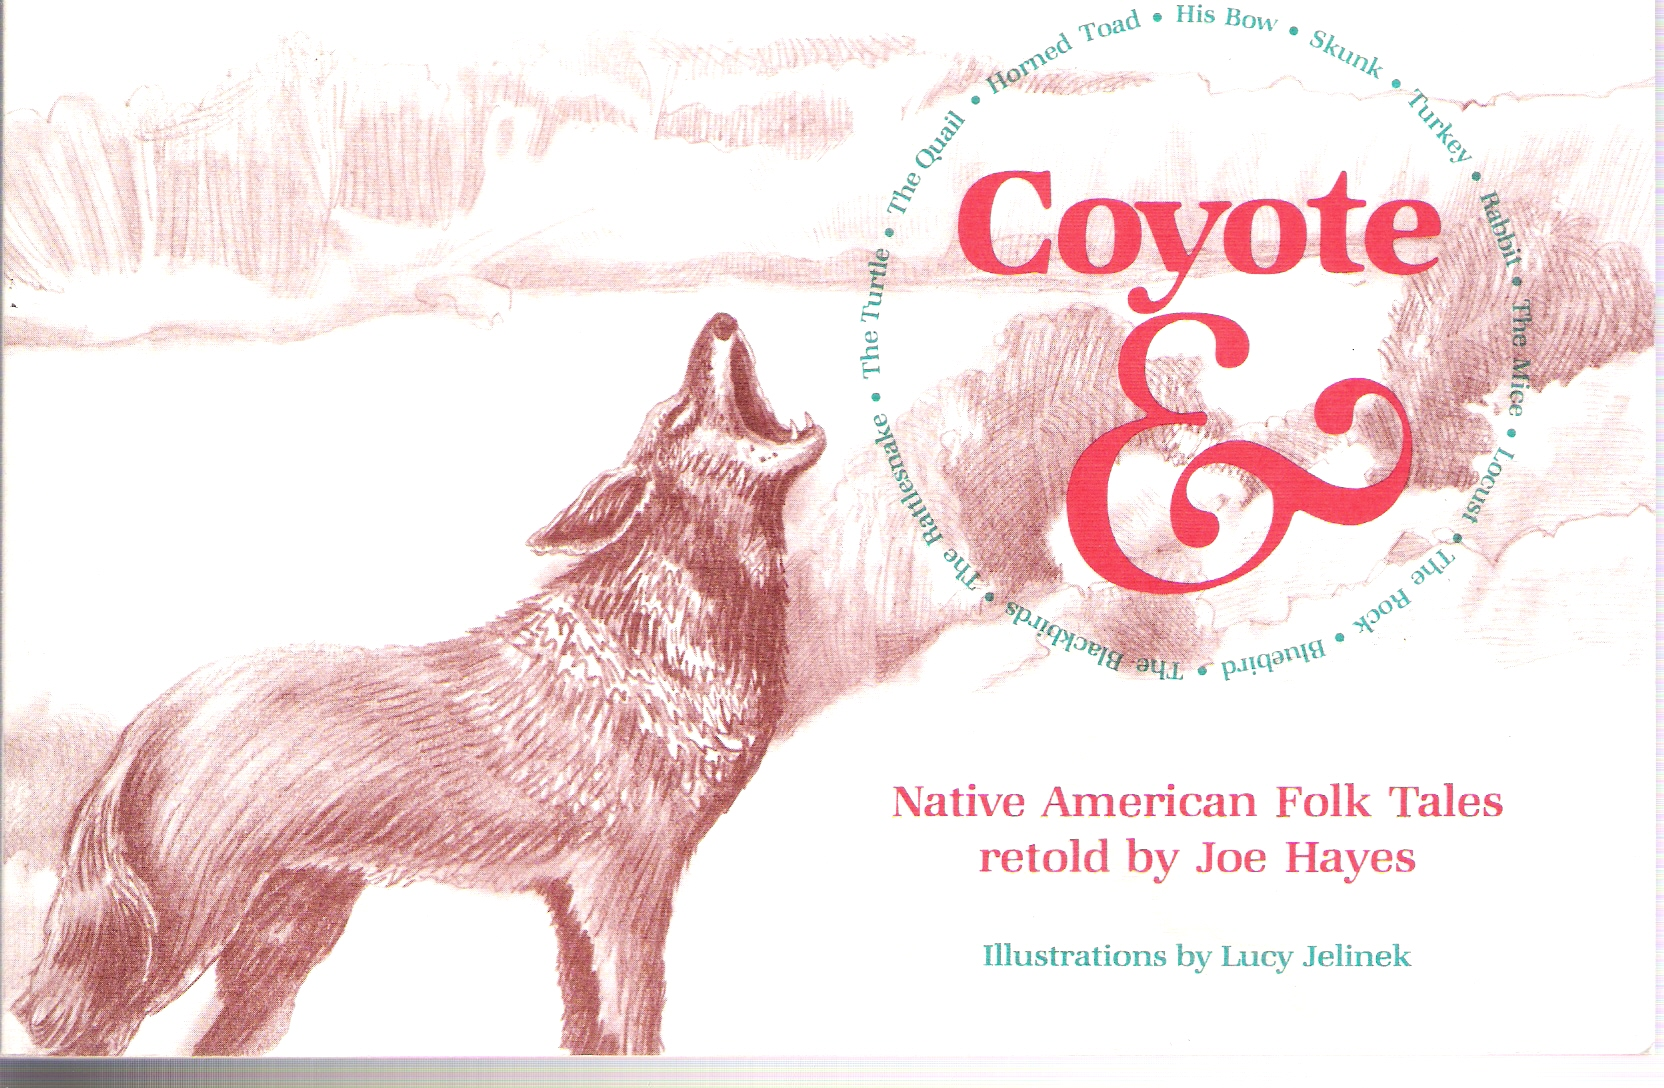 native american trickster tales essay The trickster shares many attributes with man in native american stories he  takes the form of the coyote he is earthbound, like man, but is constantly trying to .